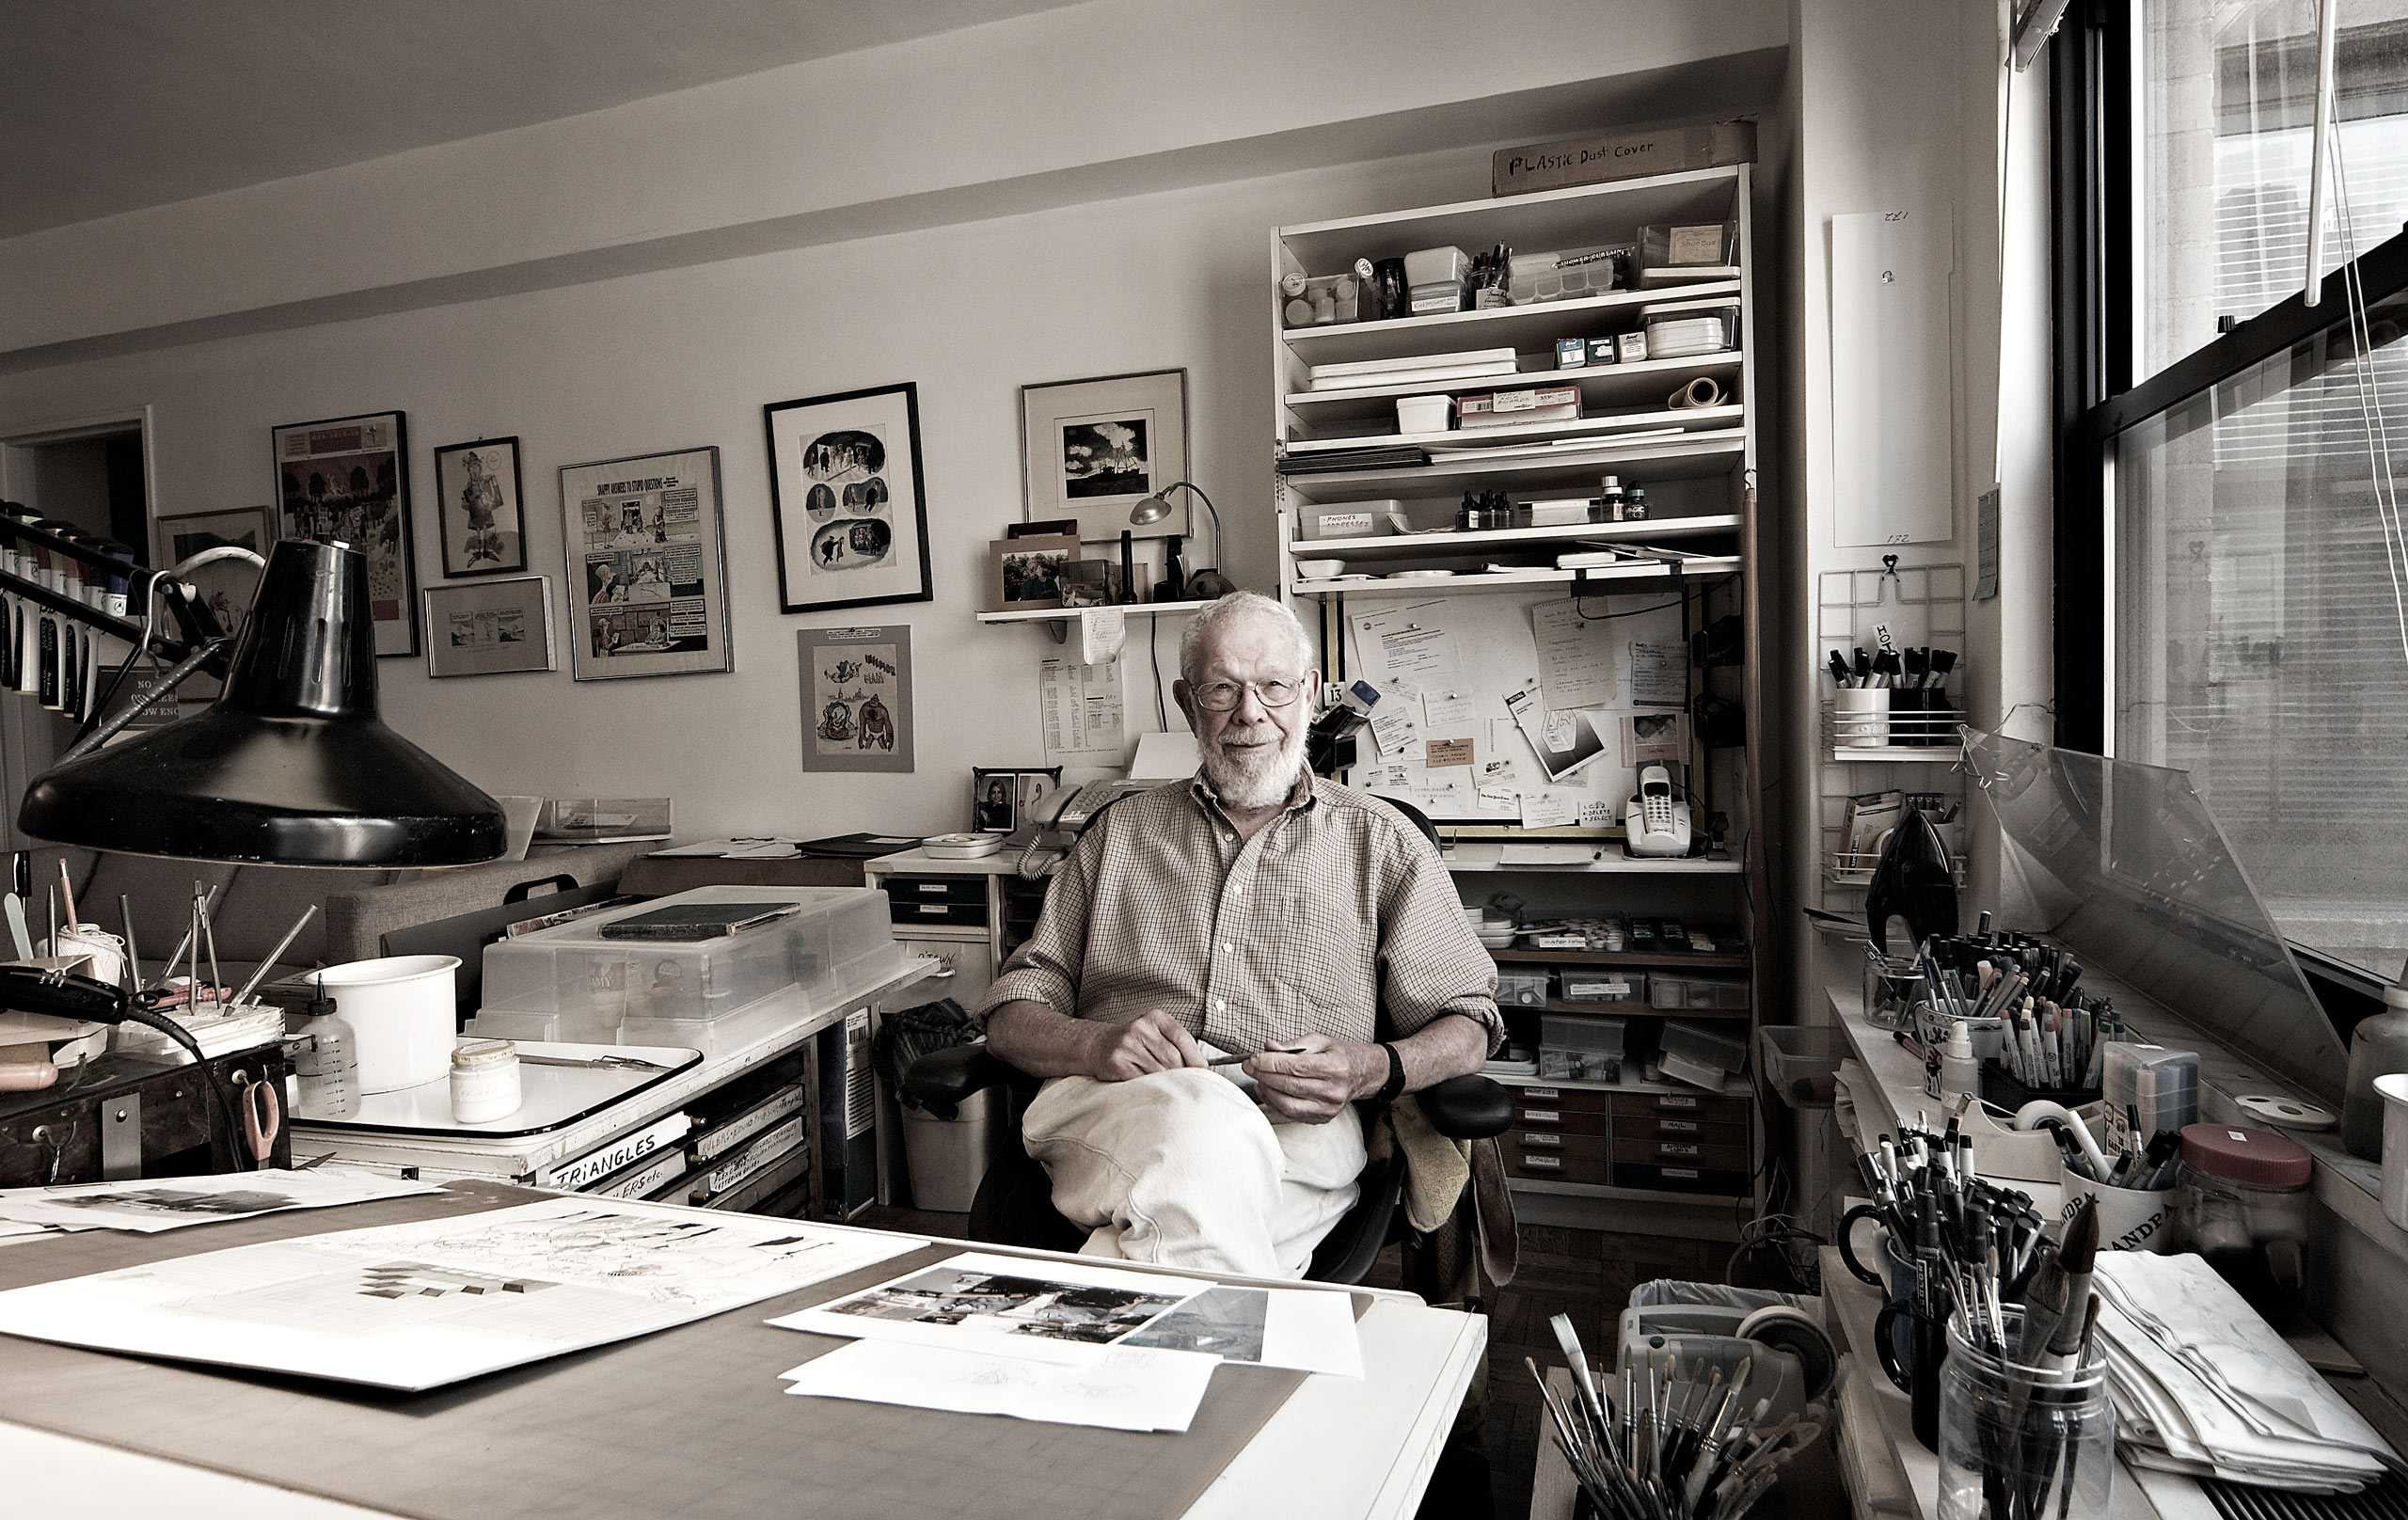 Artist/Illustrator Al Jaffee photographed in his studio for the Artist Within